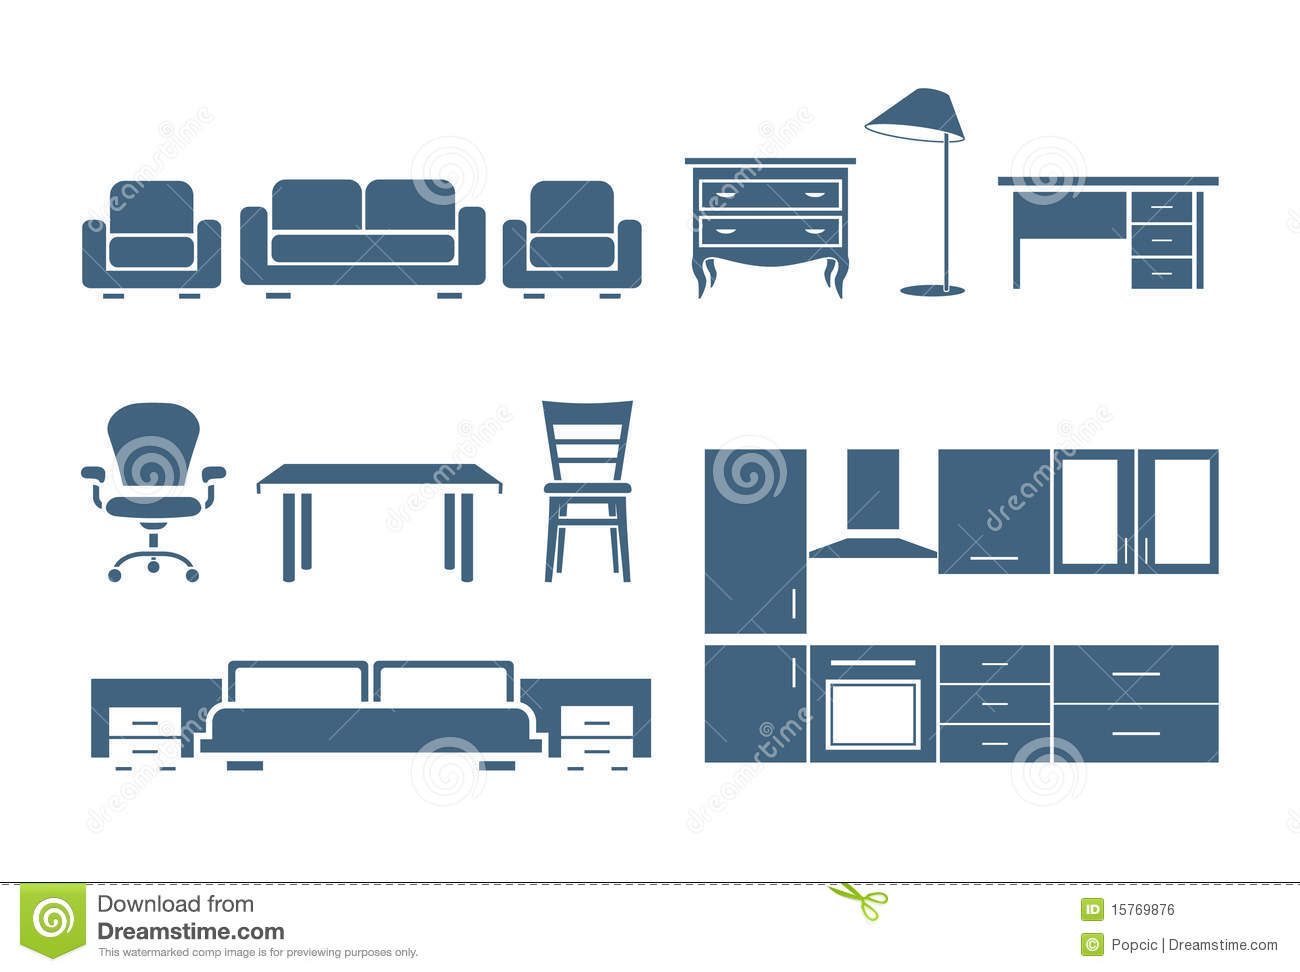 Modern Furniture Icon furniture icons royalty free stock photos - image: 35325488